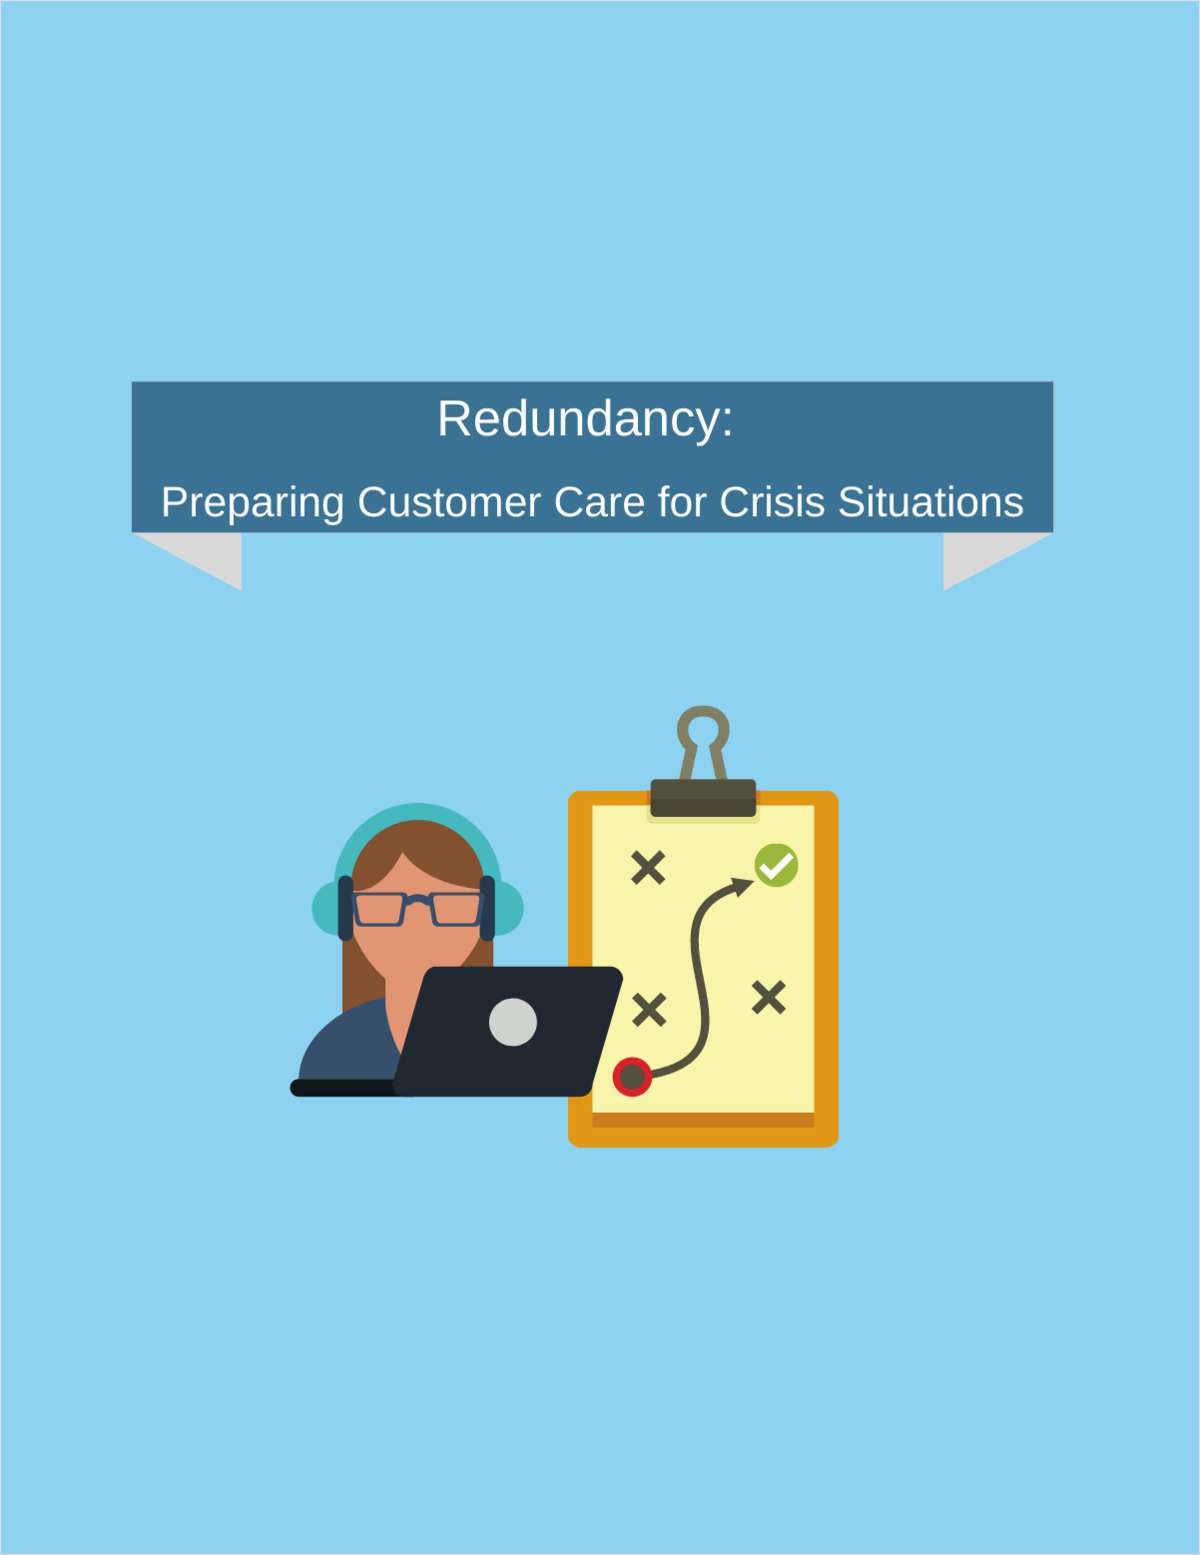 Redundancy: Preparing Customer Care for Crisis Situations